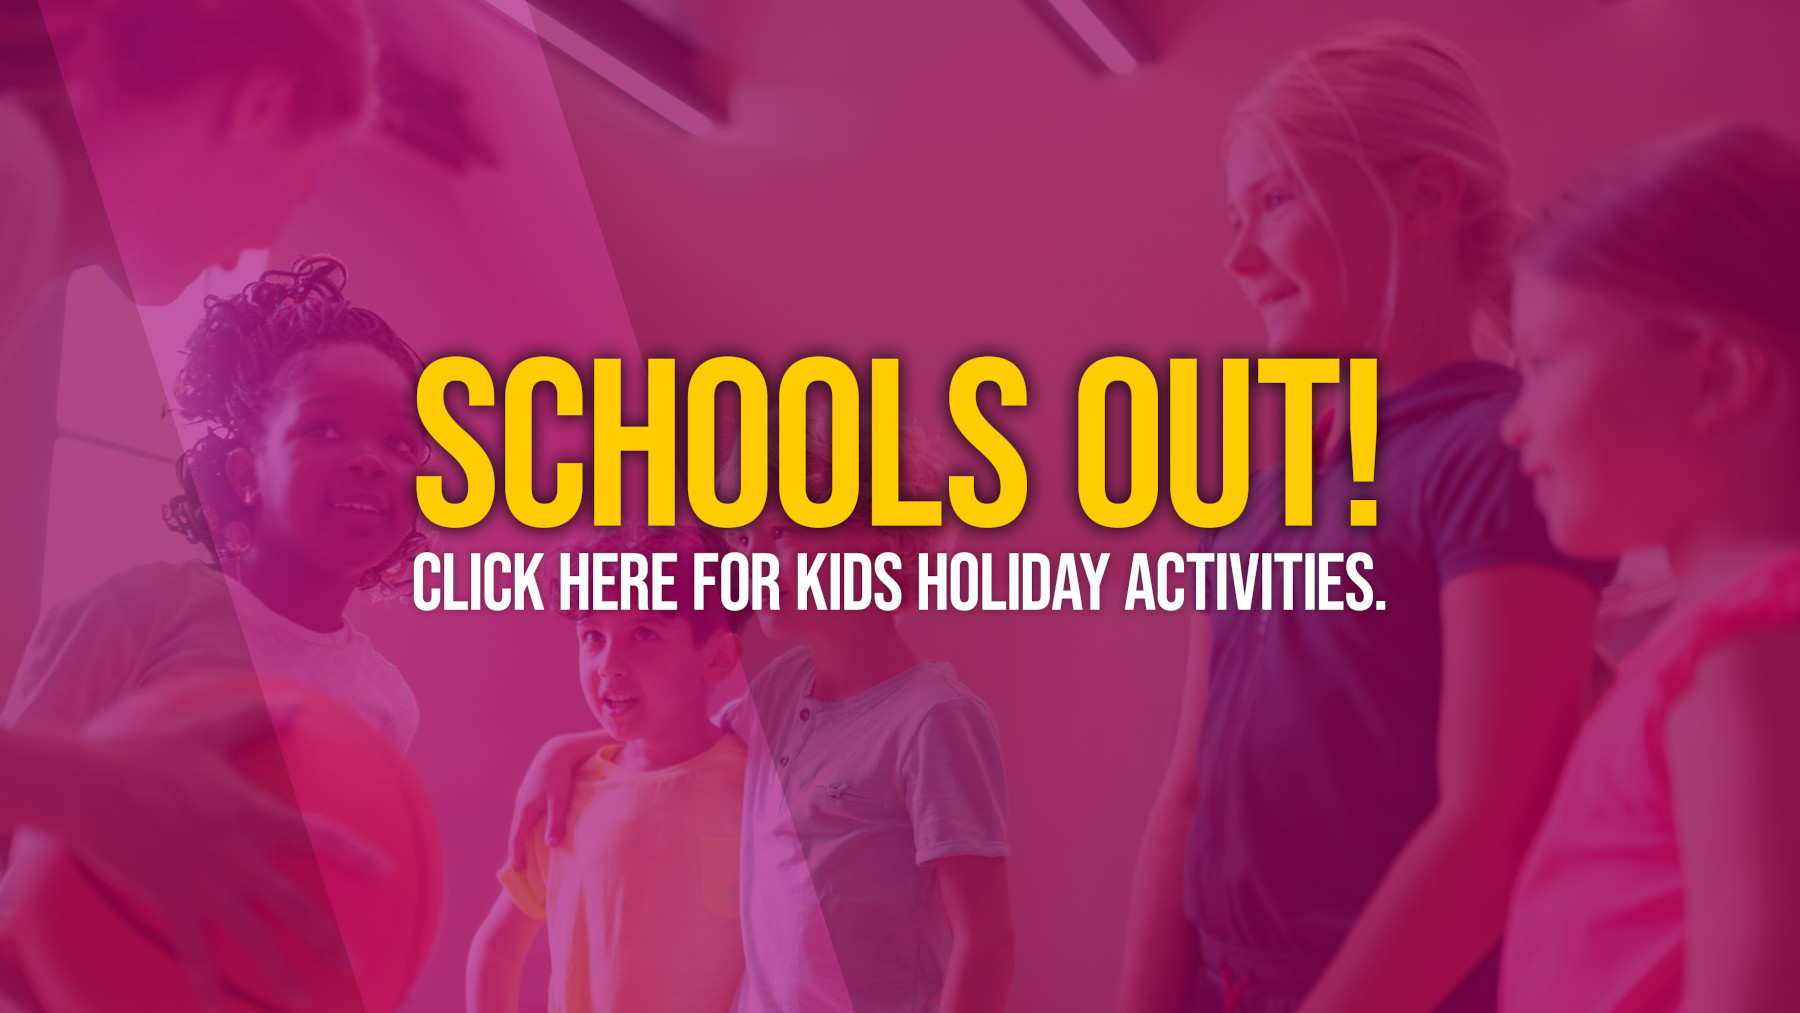 Schools Out, Holiday Activities